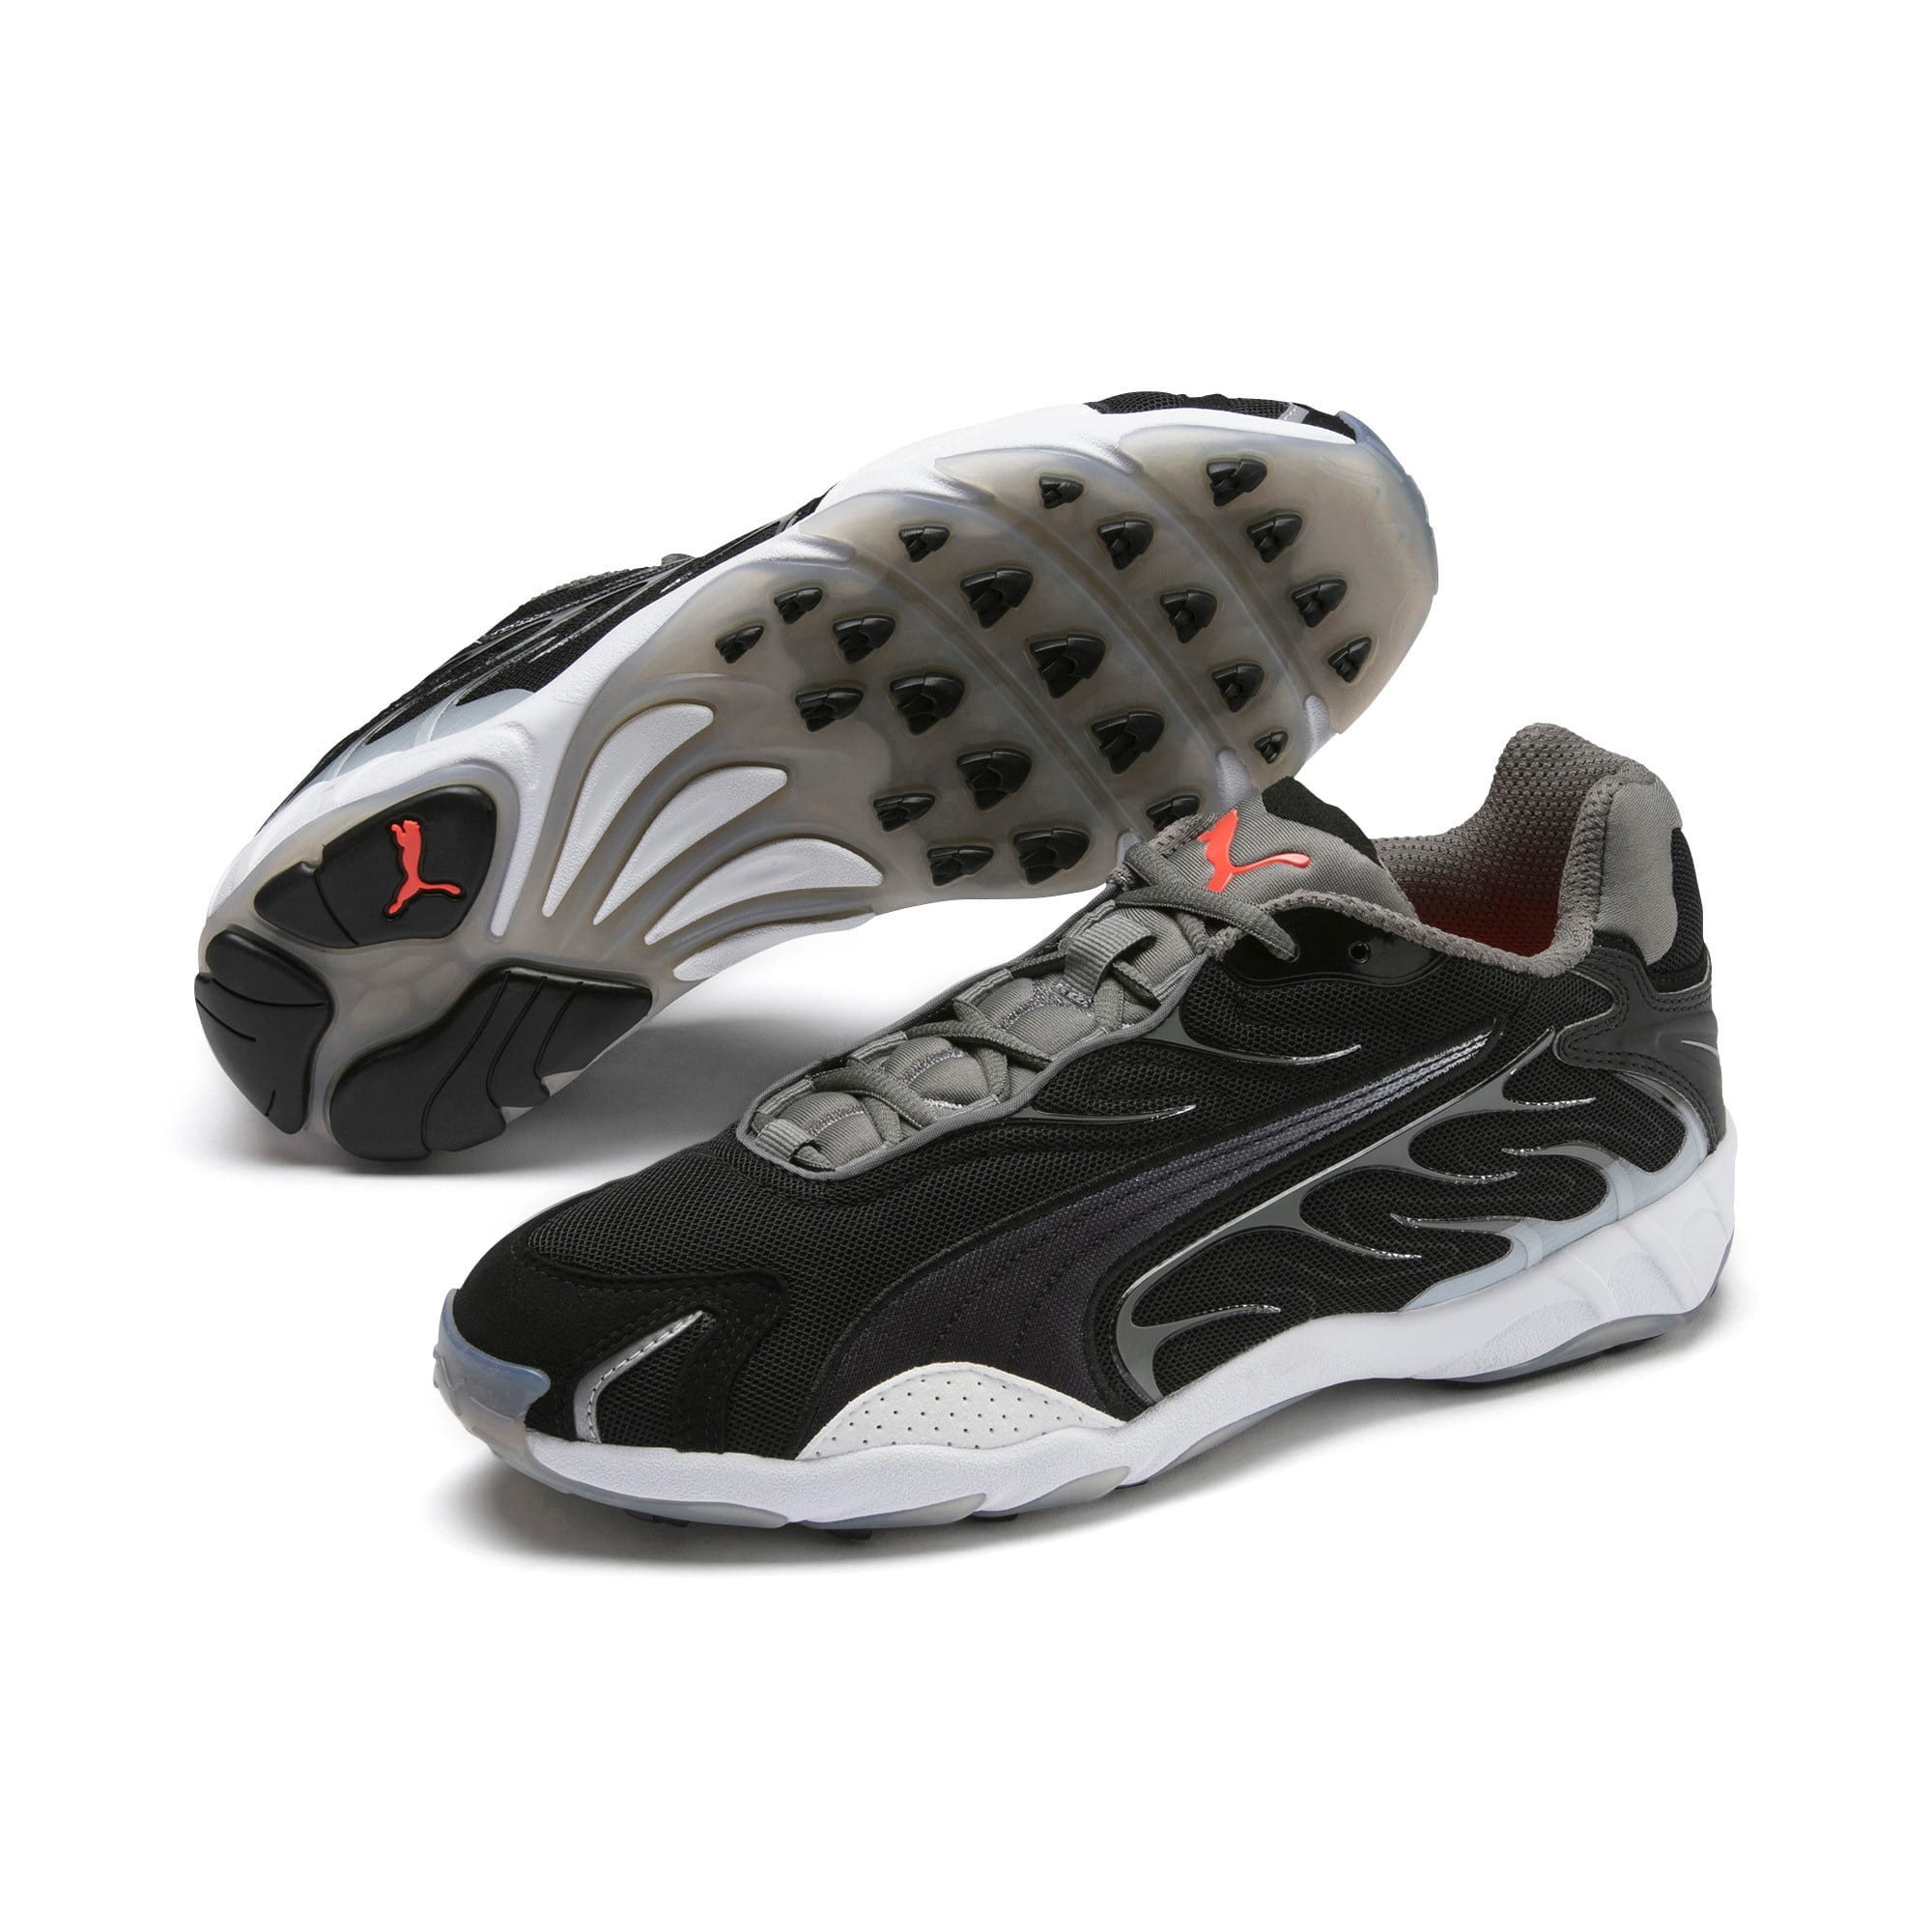 Thumbnail 3 of Inhale Flares Trainers, Puma Black-Puma White, medium